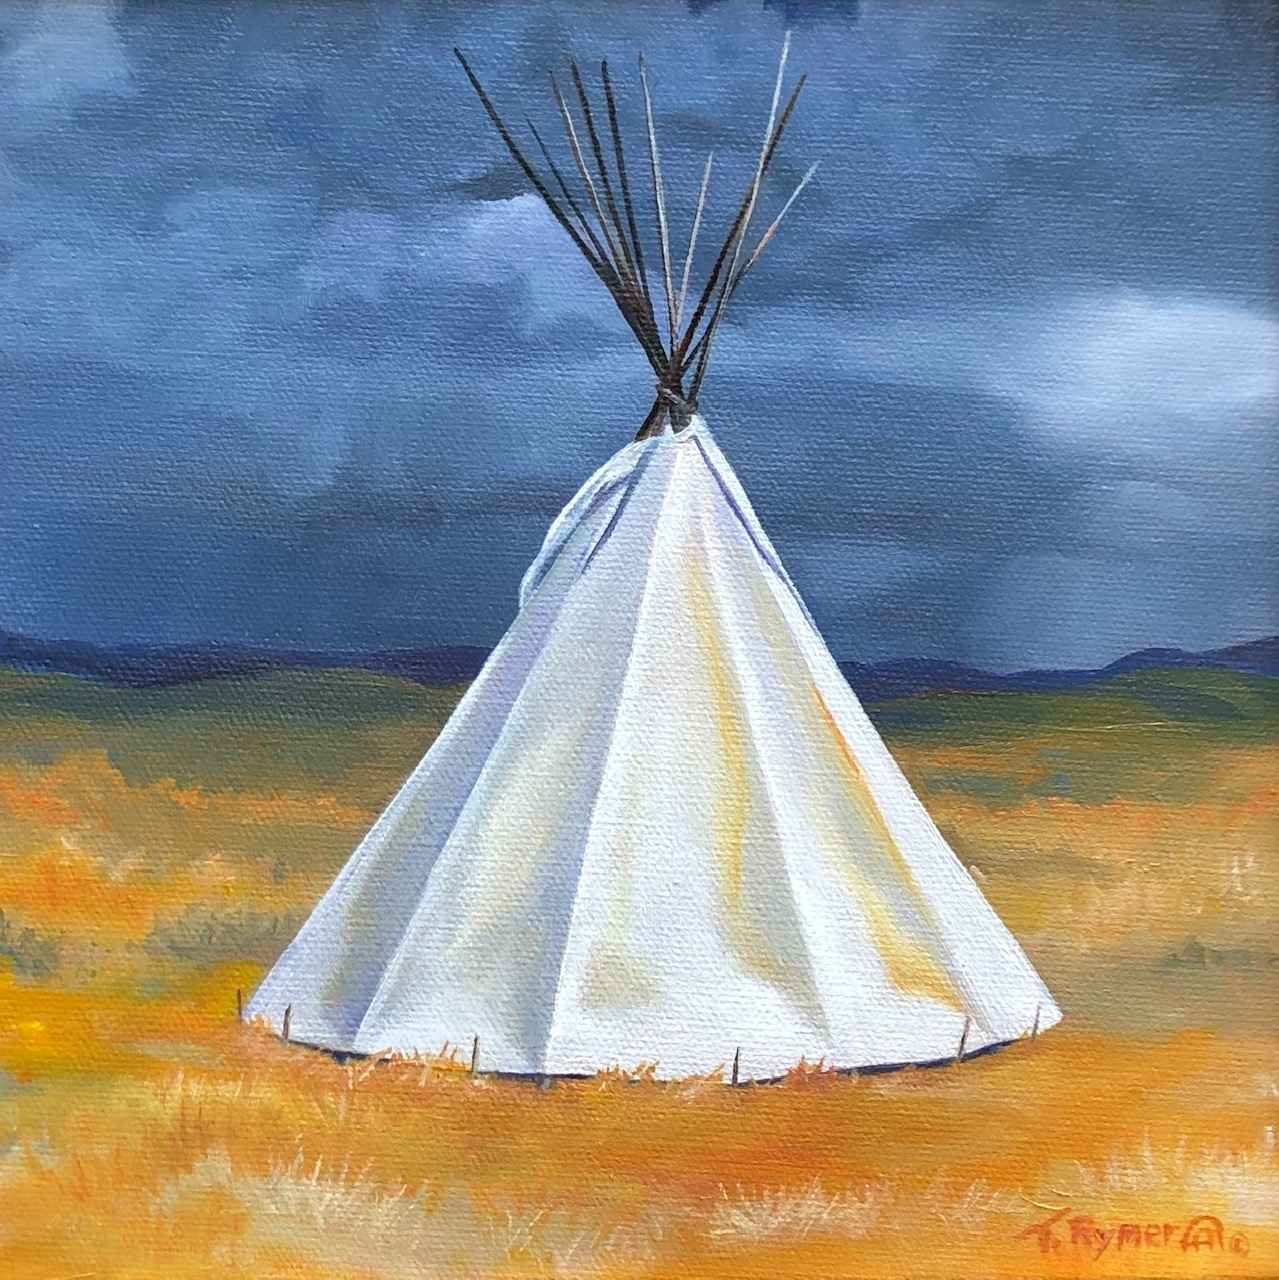 They Camped by Taos by  Tamara Rymer - Masterpiece Online